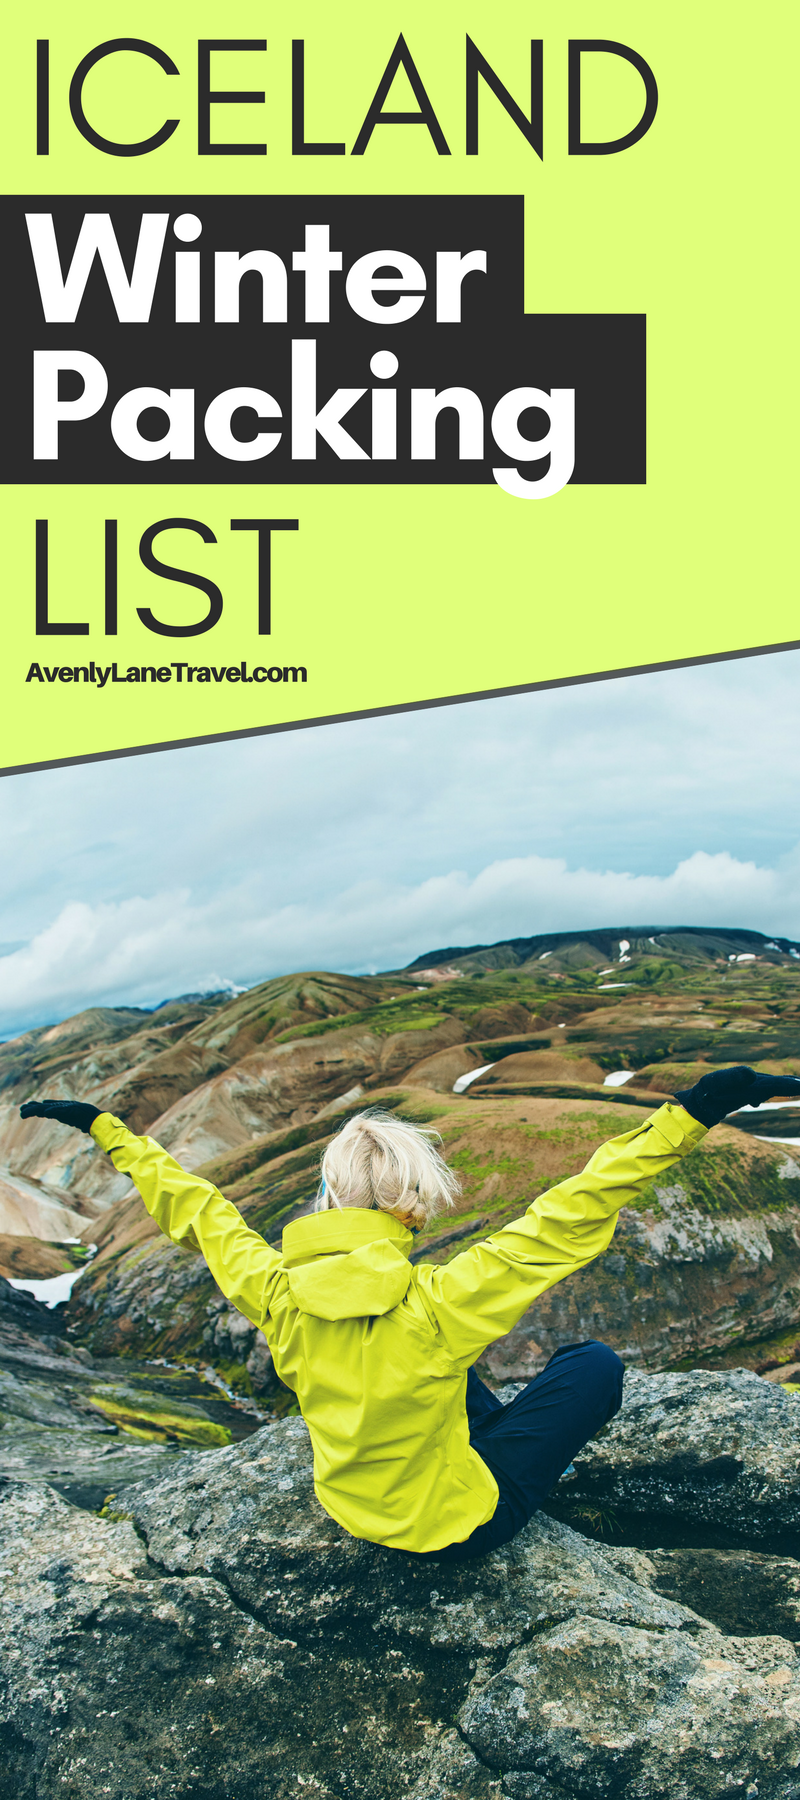 Iceland Packing List: What to wear and pack for Iceland ...